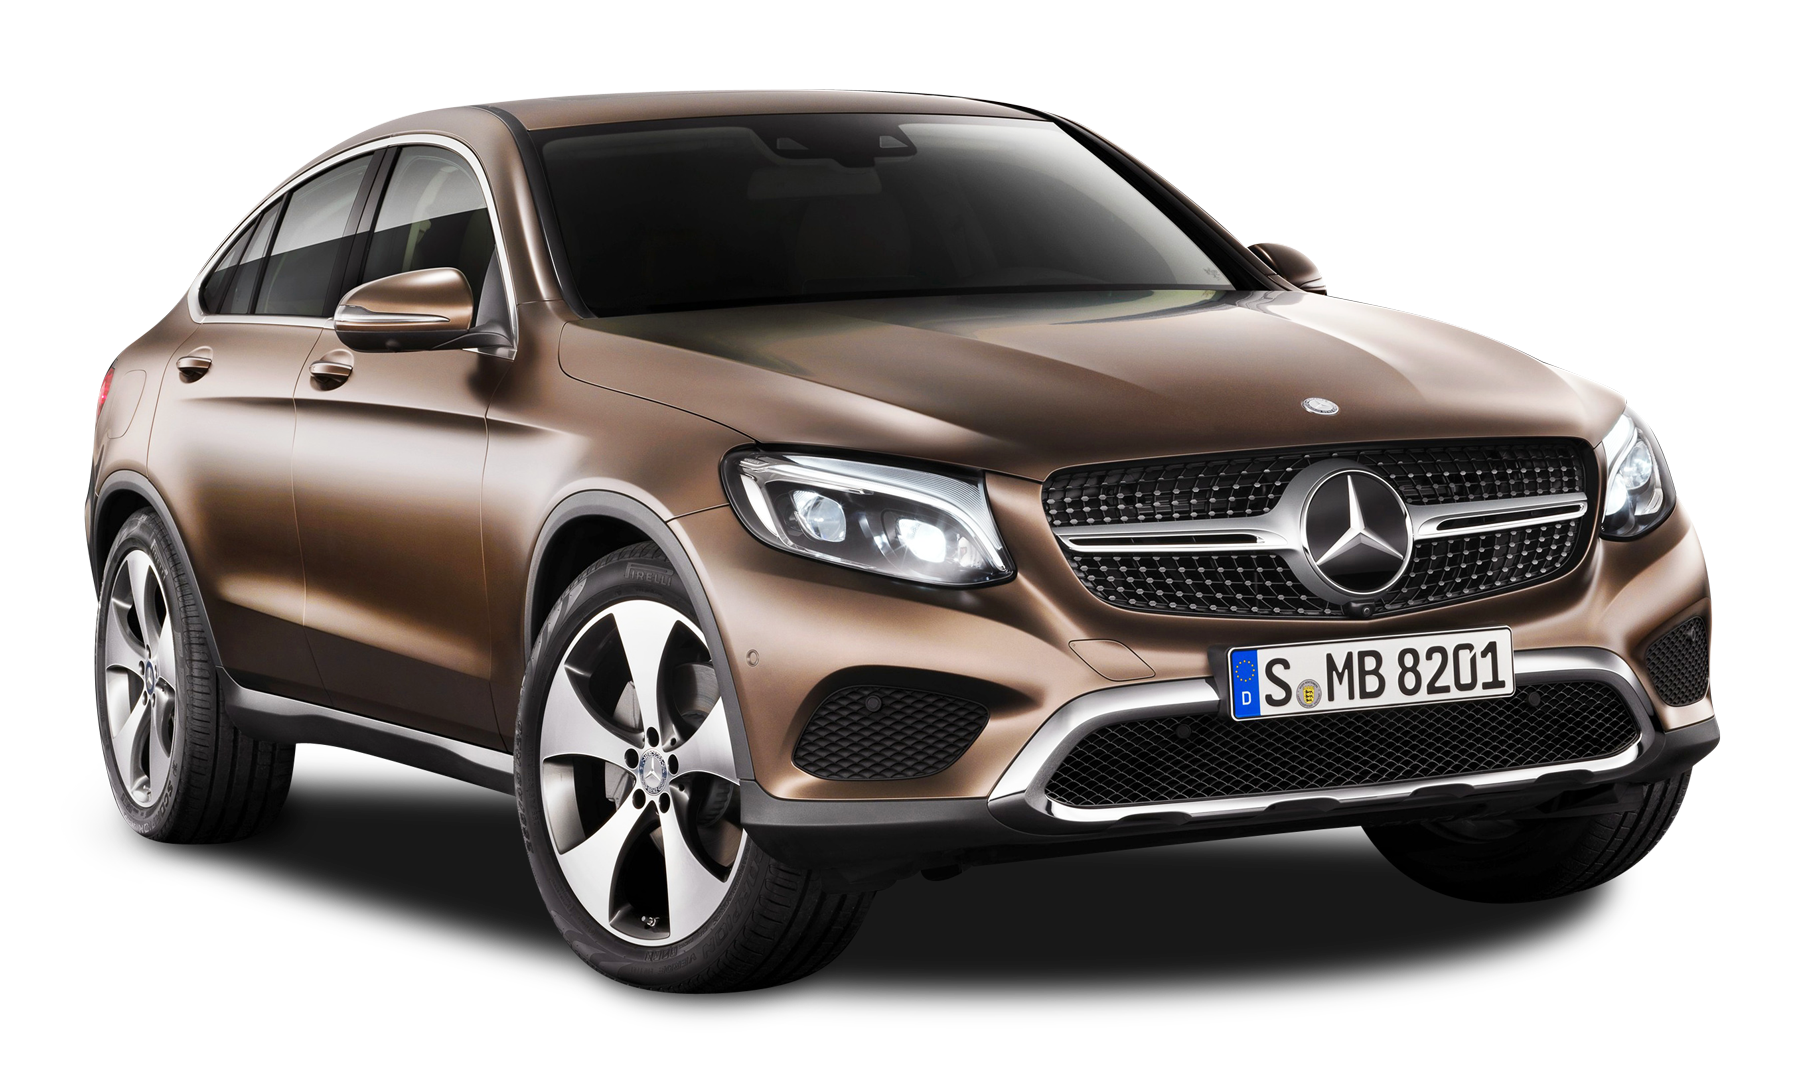 Brown Mercedes Benz GLE Coupe Car PNG Image.